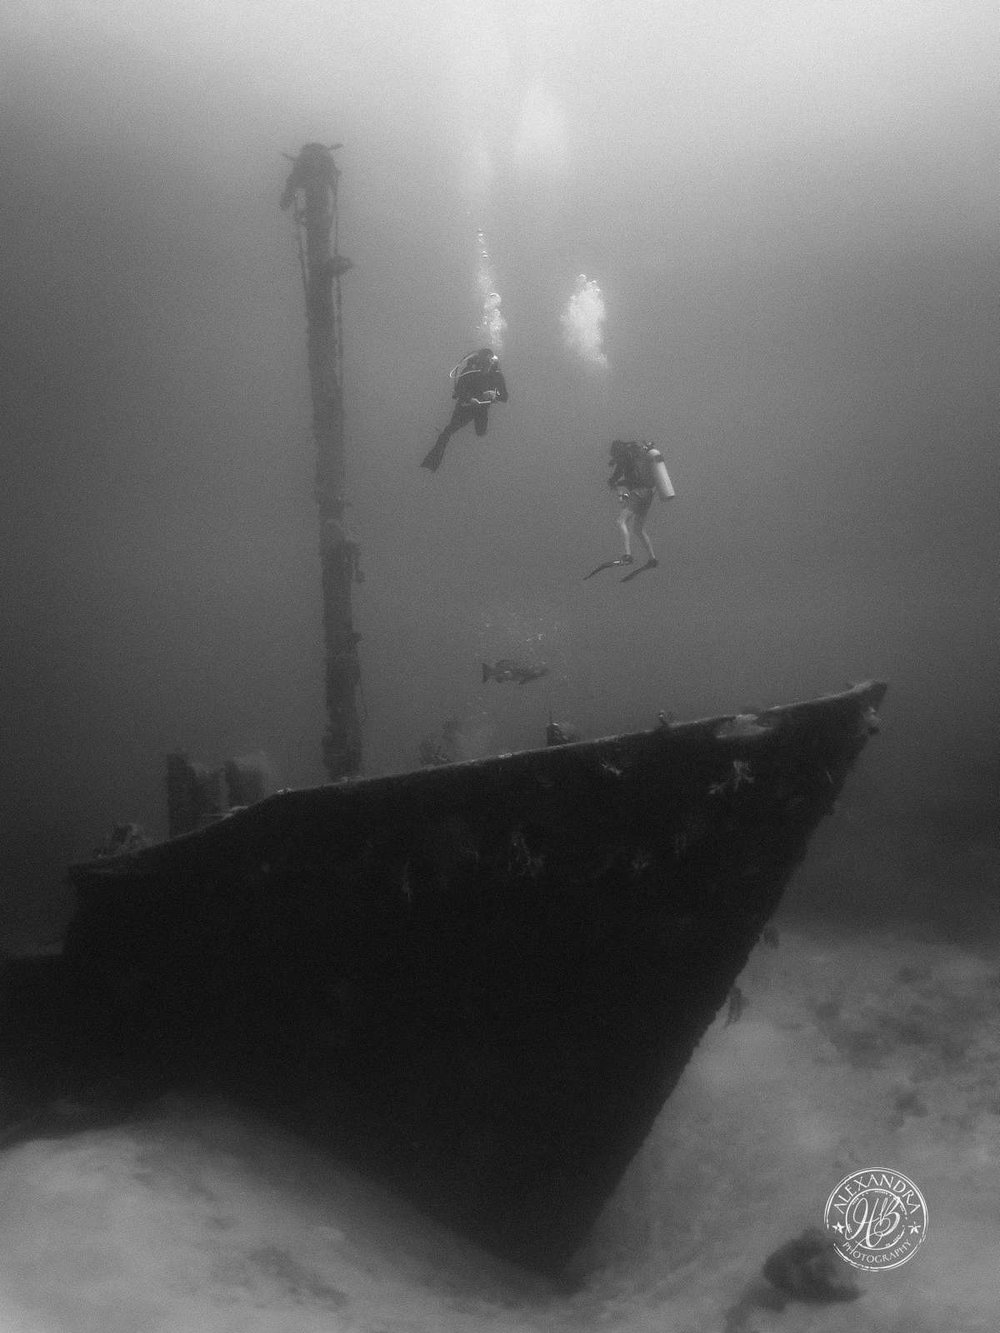 El Aguila Wreck bow b&w (May '16) (1 of 1).jpg